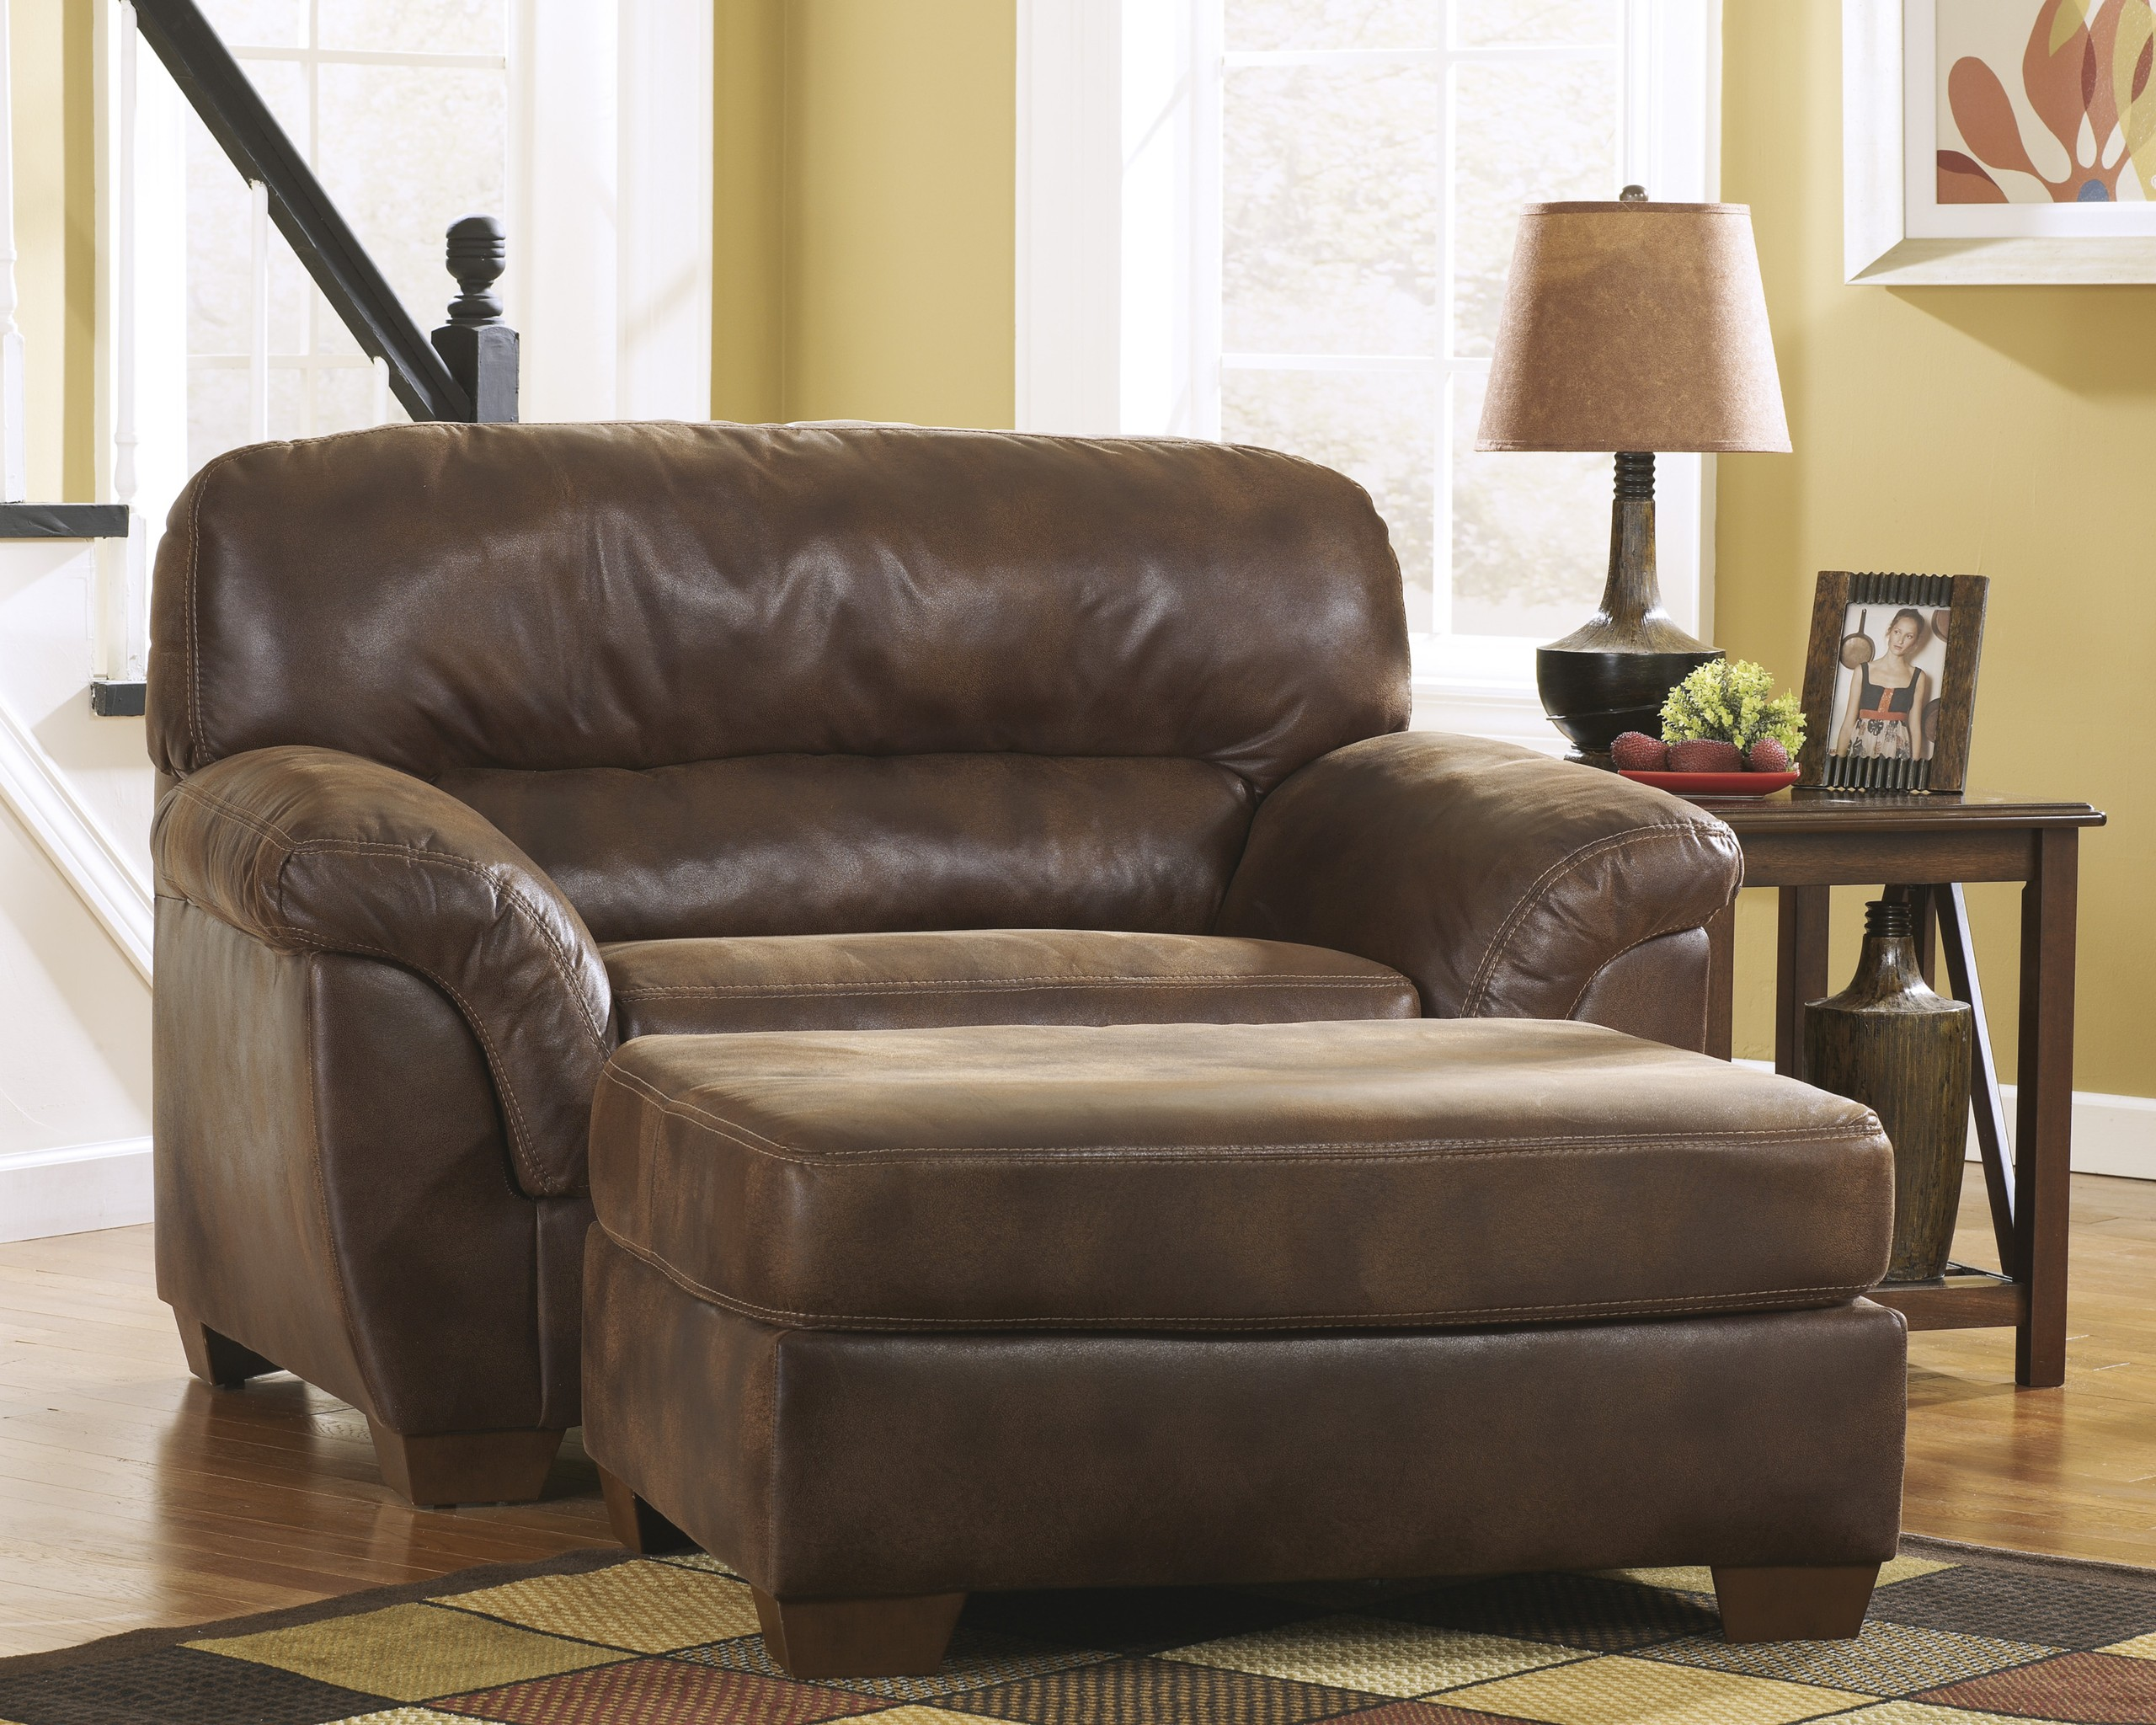 Awesome Leather Chair And A Half With Ottoman